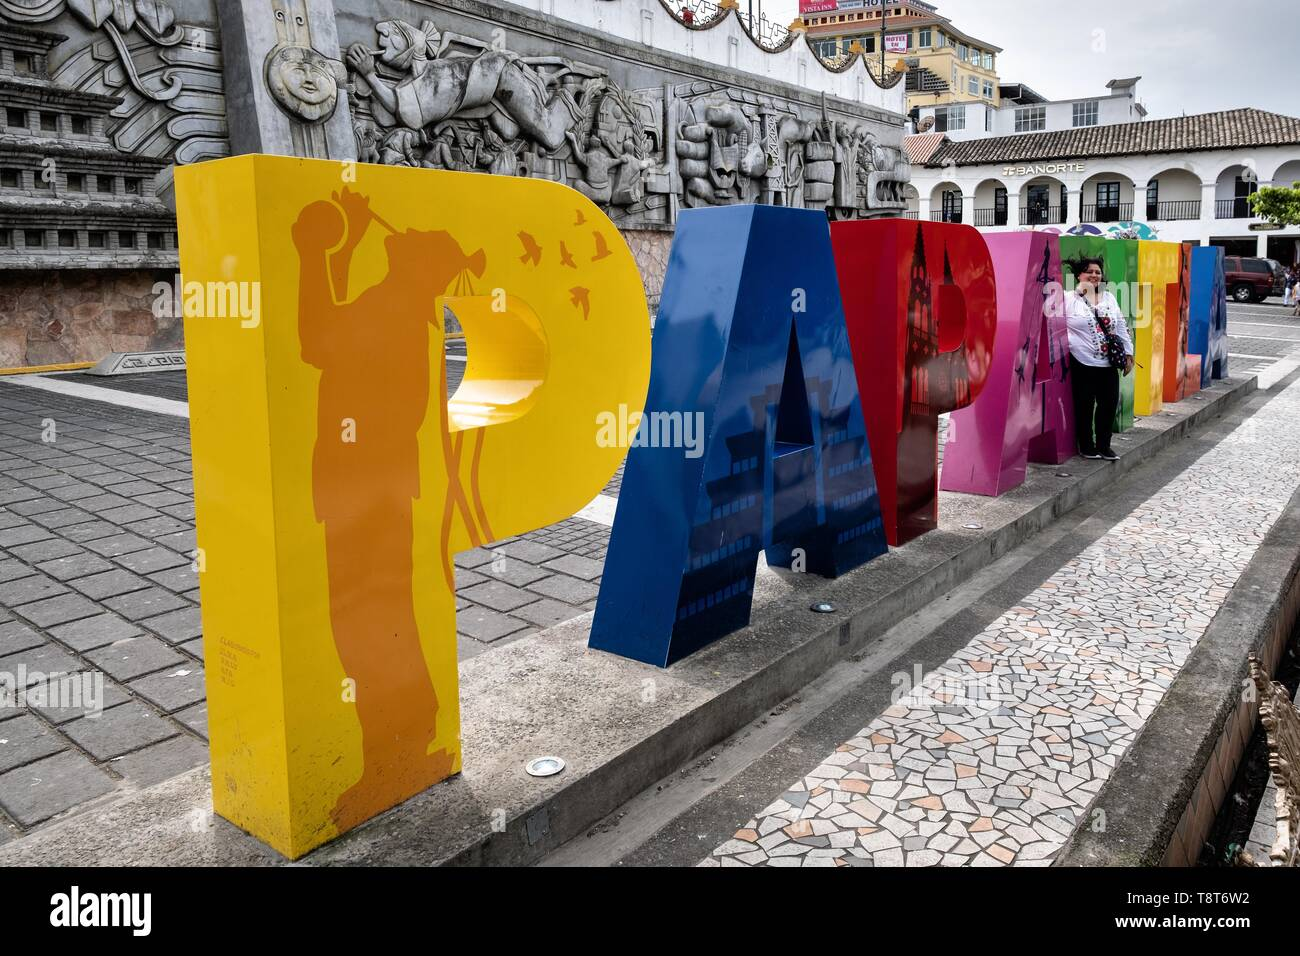 A poses at the city sign in front of the sculpture; Evolution of the Totonac culture by Teodoro Cano Garcia, in the Plaza Central Israel Tellez Park in Papantla, Veracruz, Mexico. - Stock Image